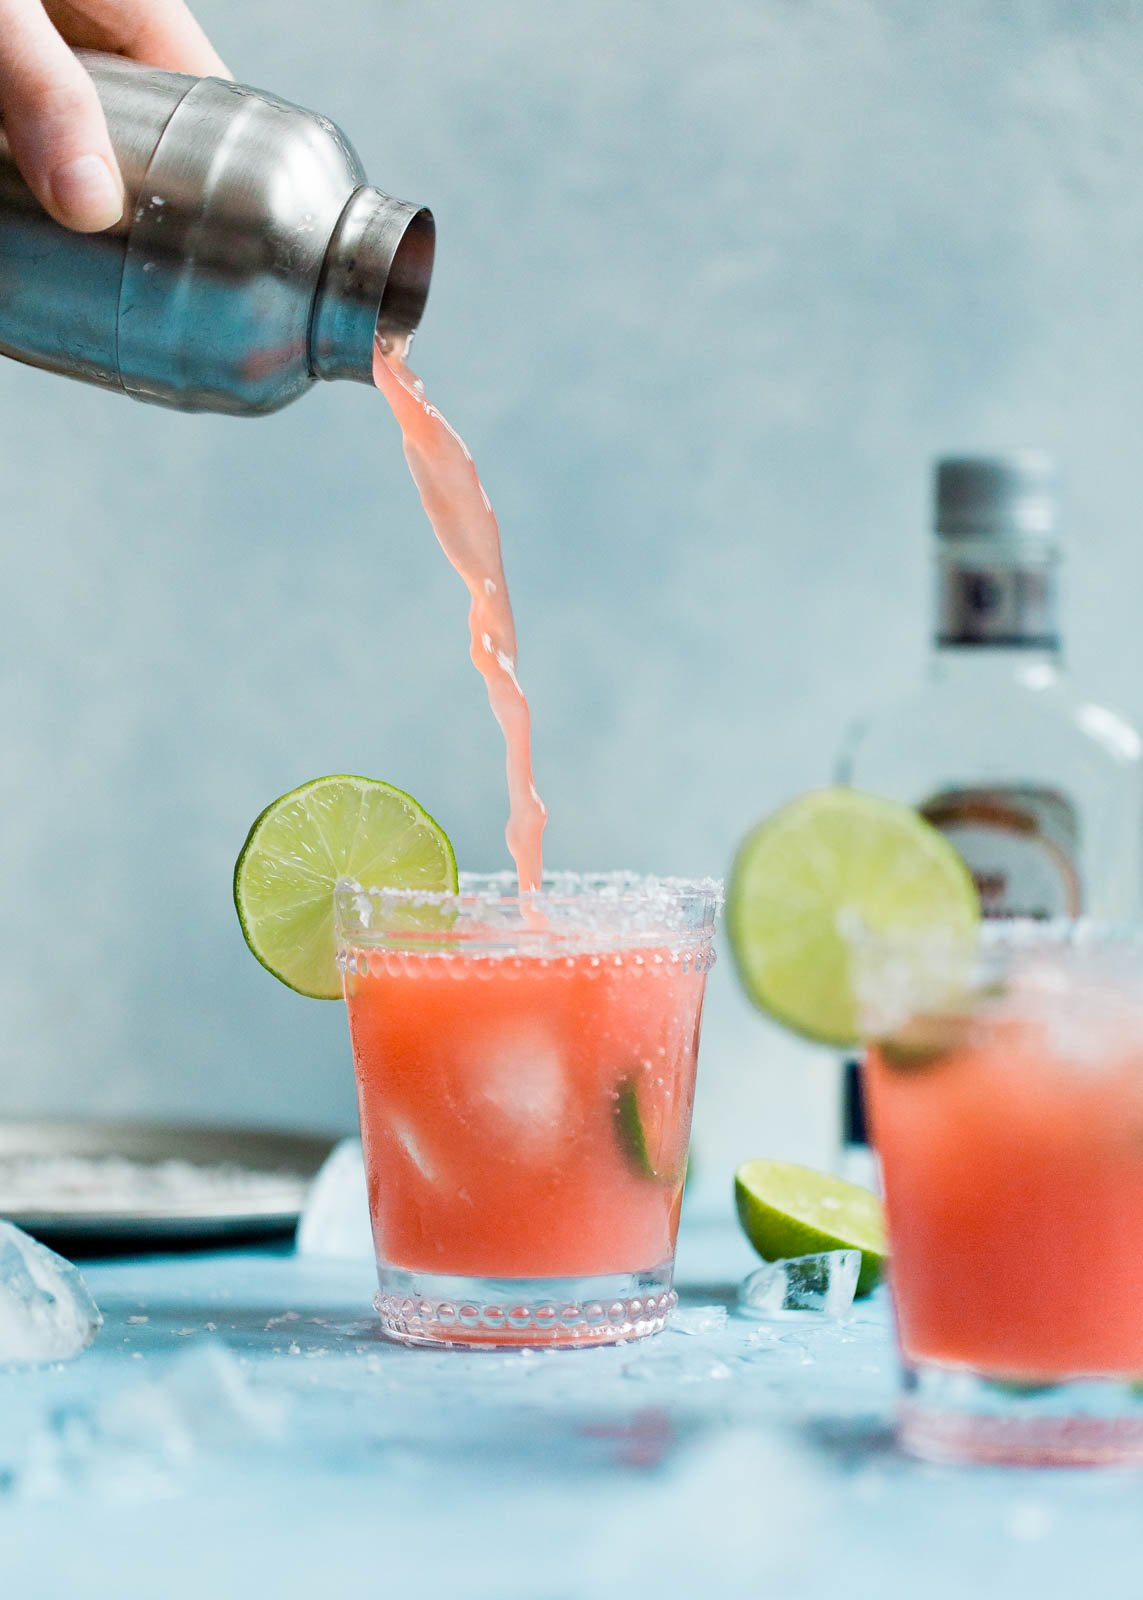 Skinny Jalapeño Watermelon Margaritas being poured into a glass